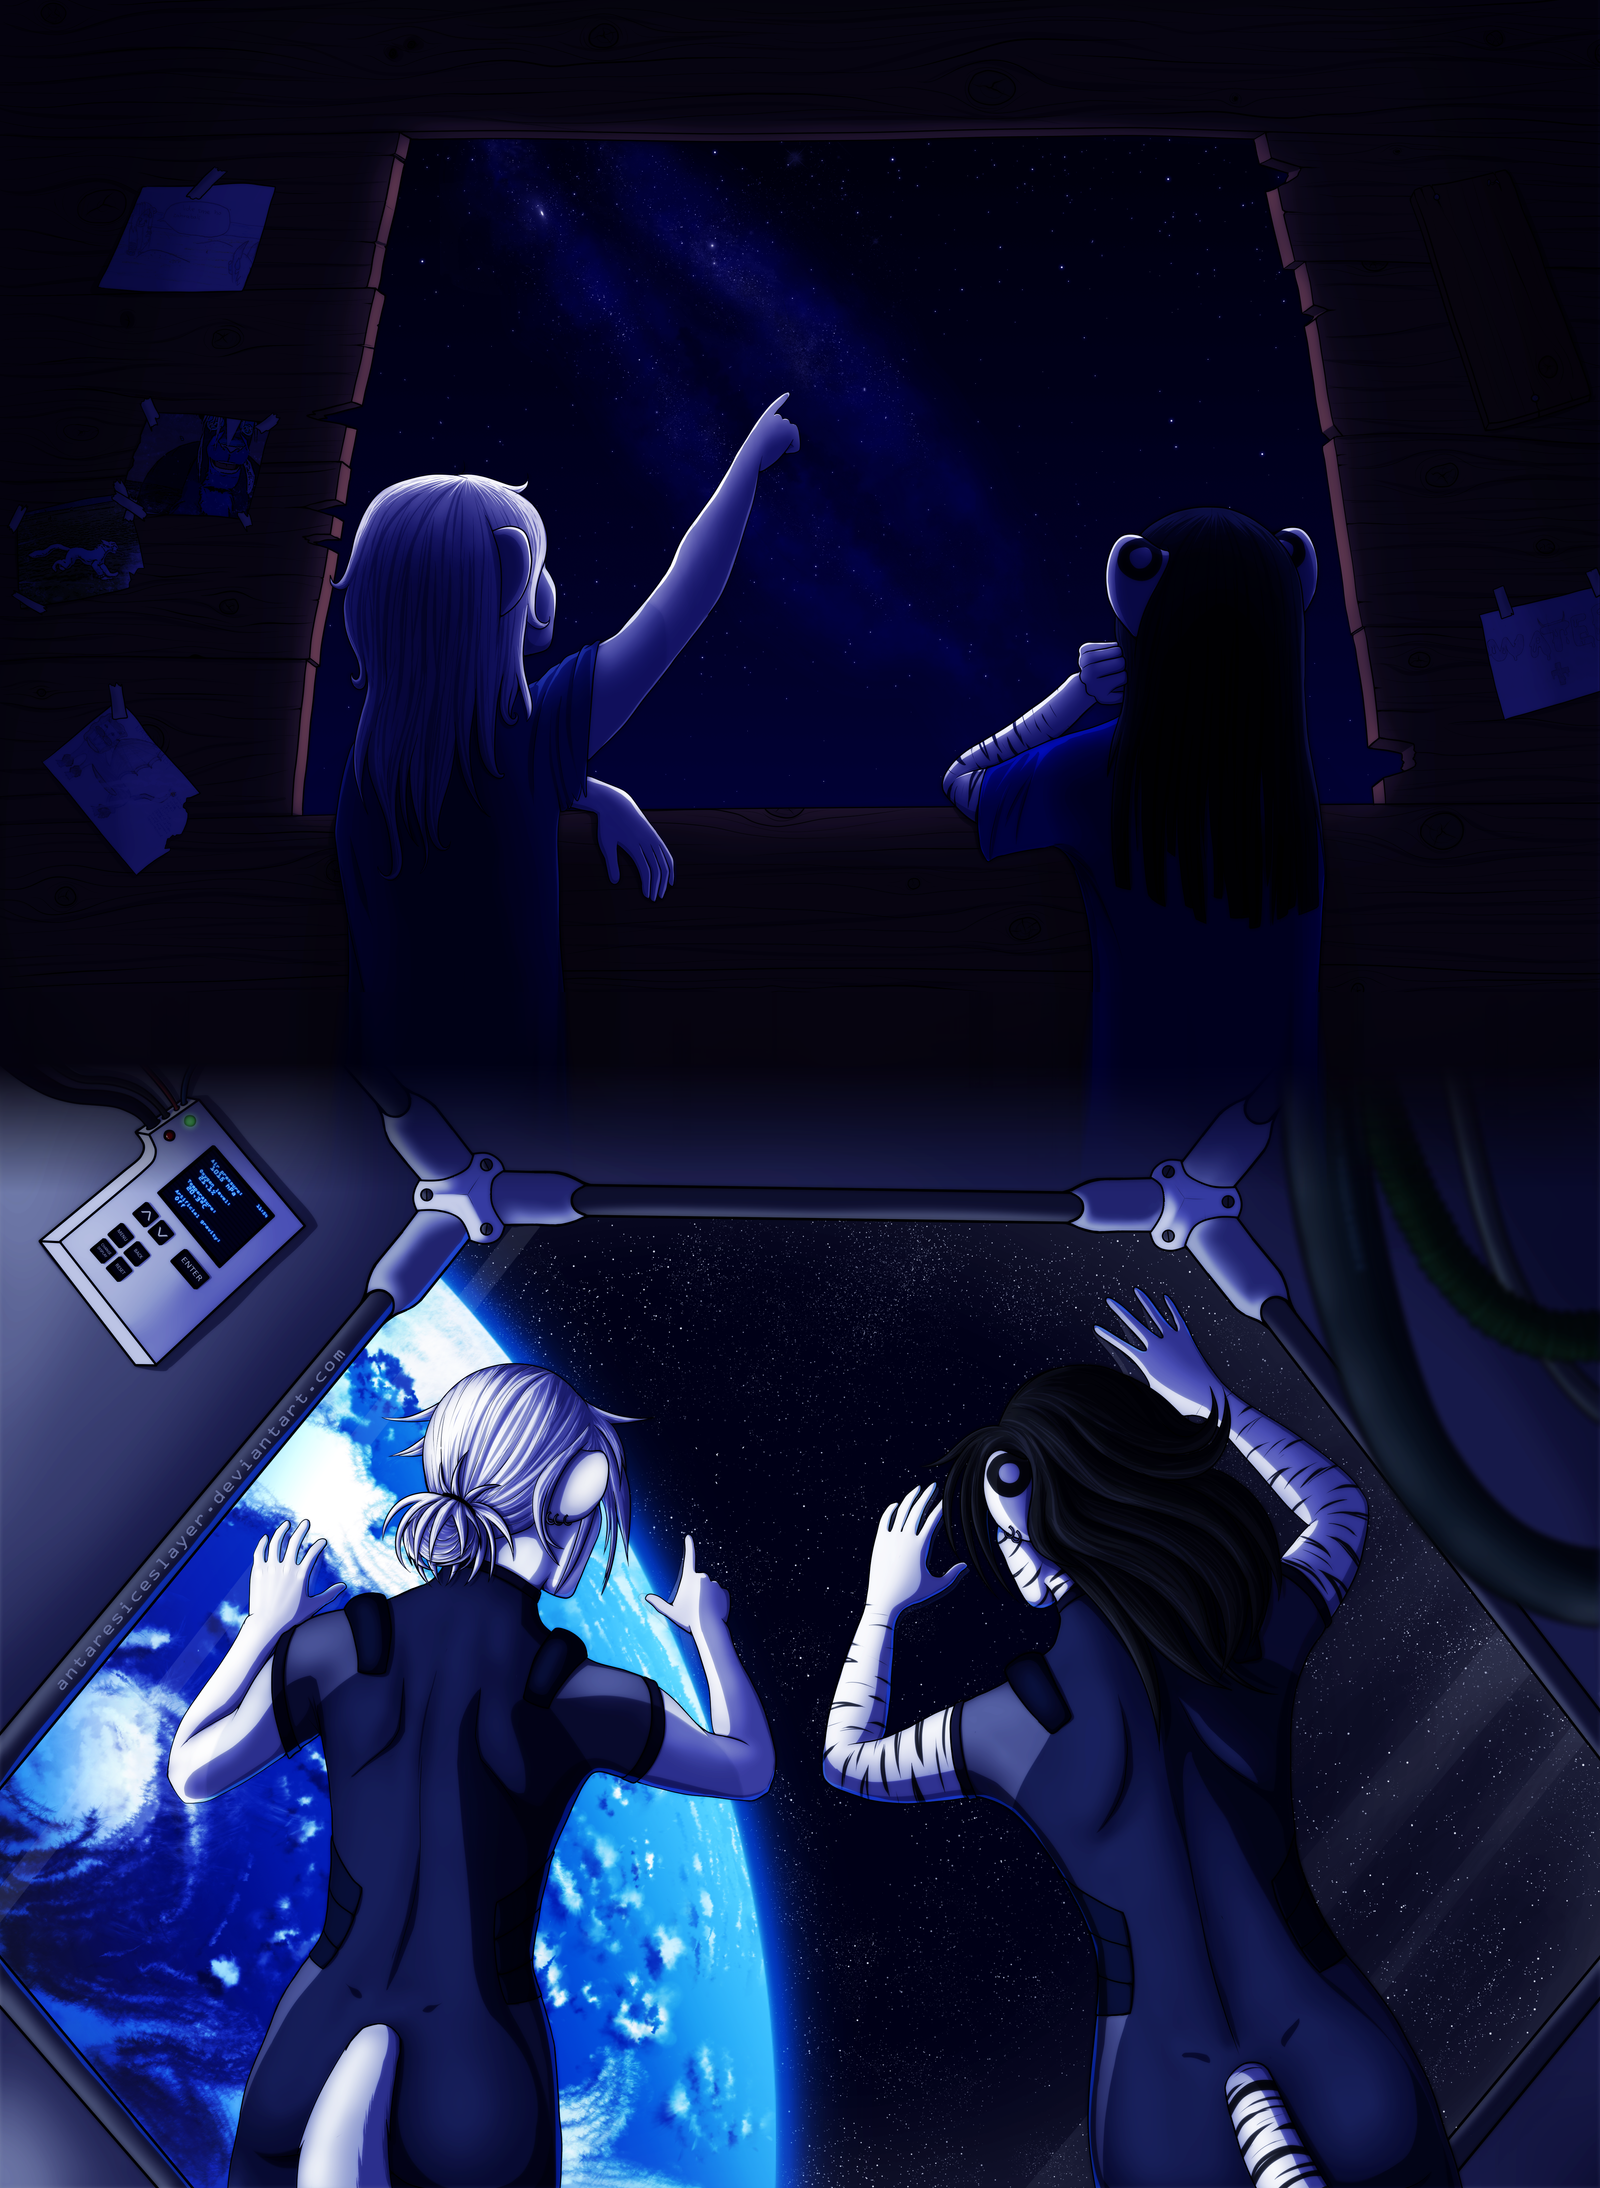 _ac__114__our_memories_by_antaresiceslayer-d8bto06.png